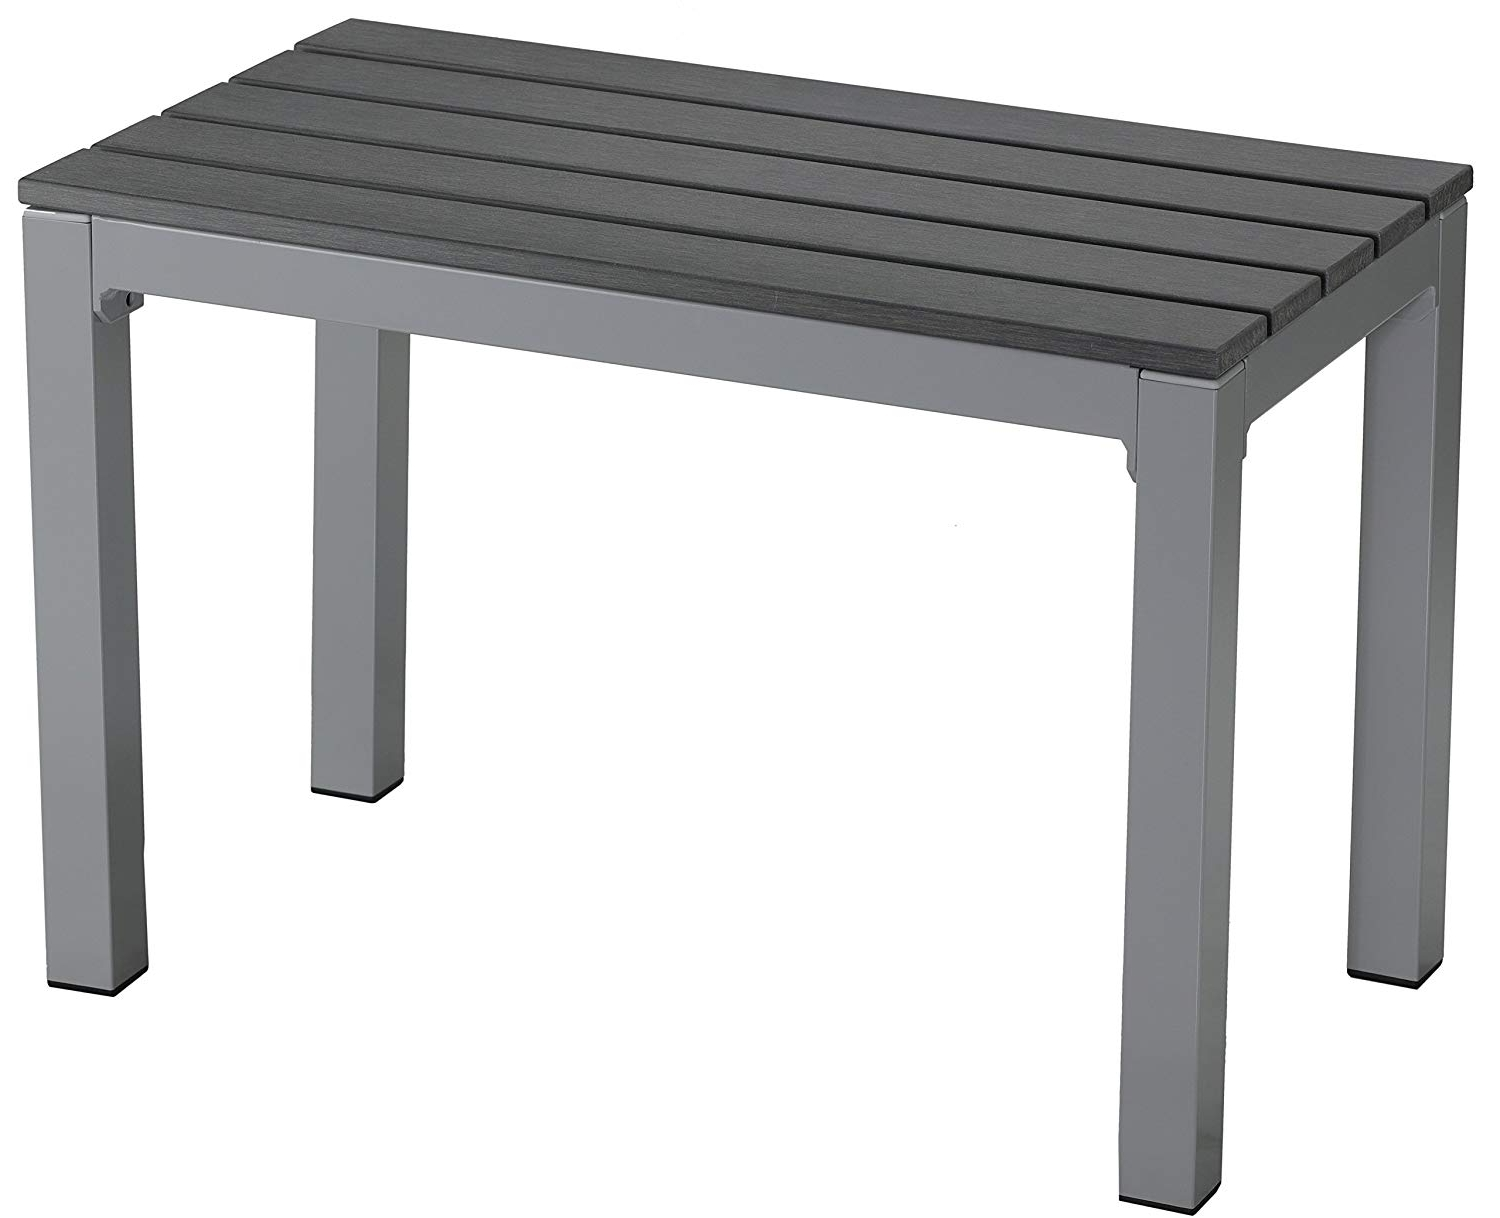 Most Recent Amazon : Cortesi Home Jaxon Aluminum Outdoor Picnic Bench For Jaxon 6 Piece Rectangle Dining Sets With Bench & Uph Chairs (View 17 of 25)